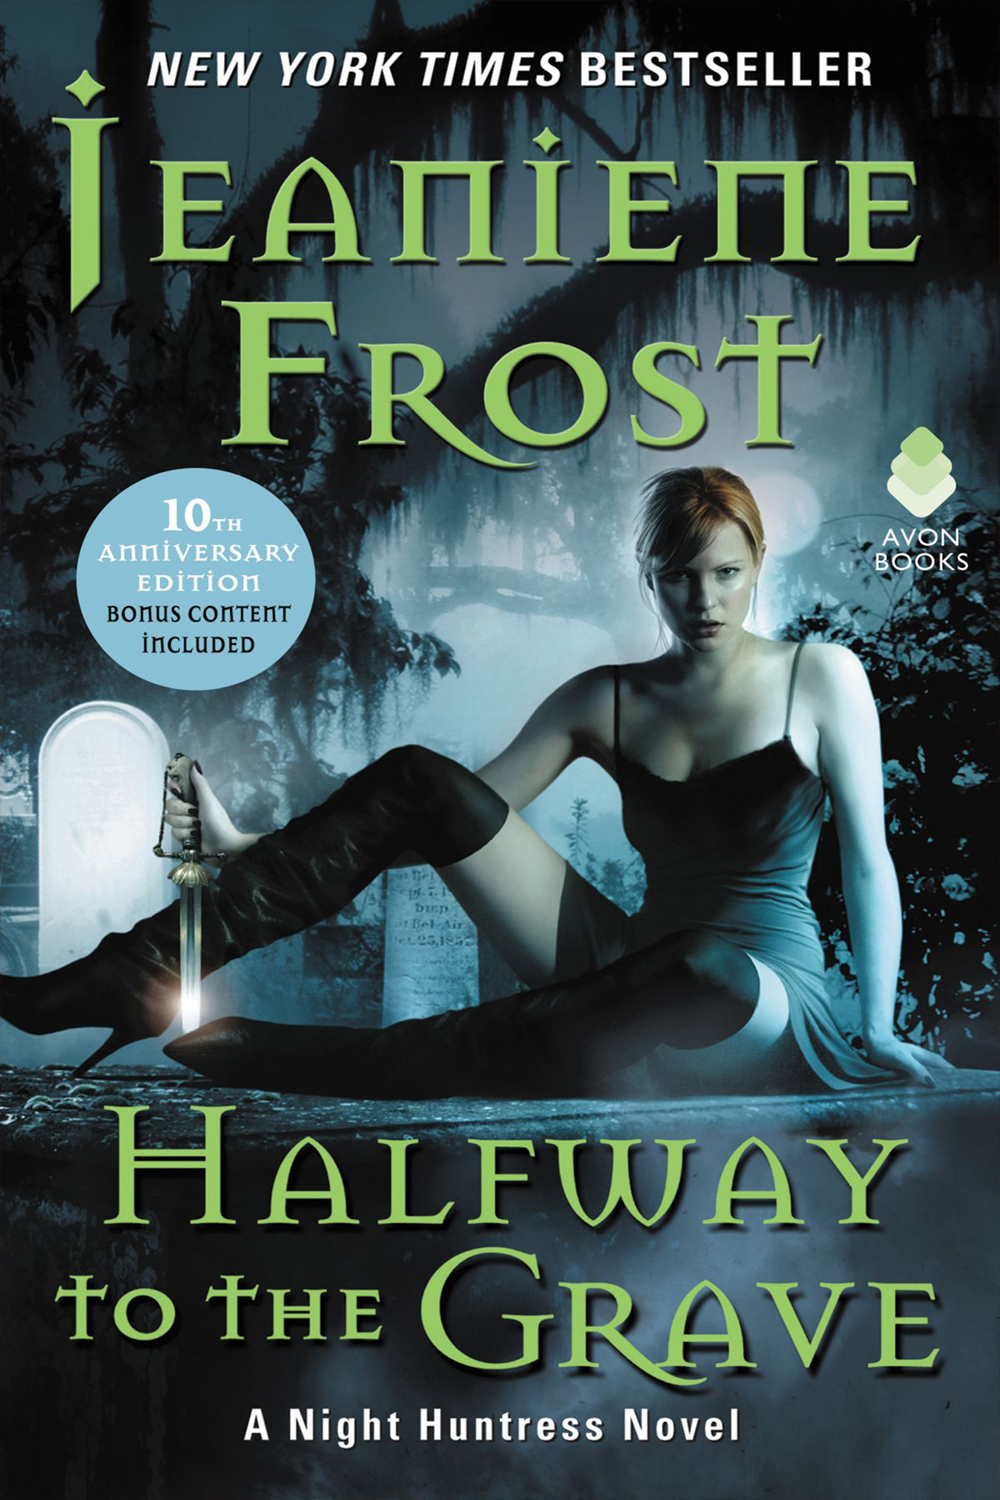 S1 E2 Halfway to the Grave by Jeaniene Frost